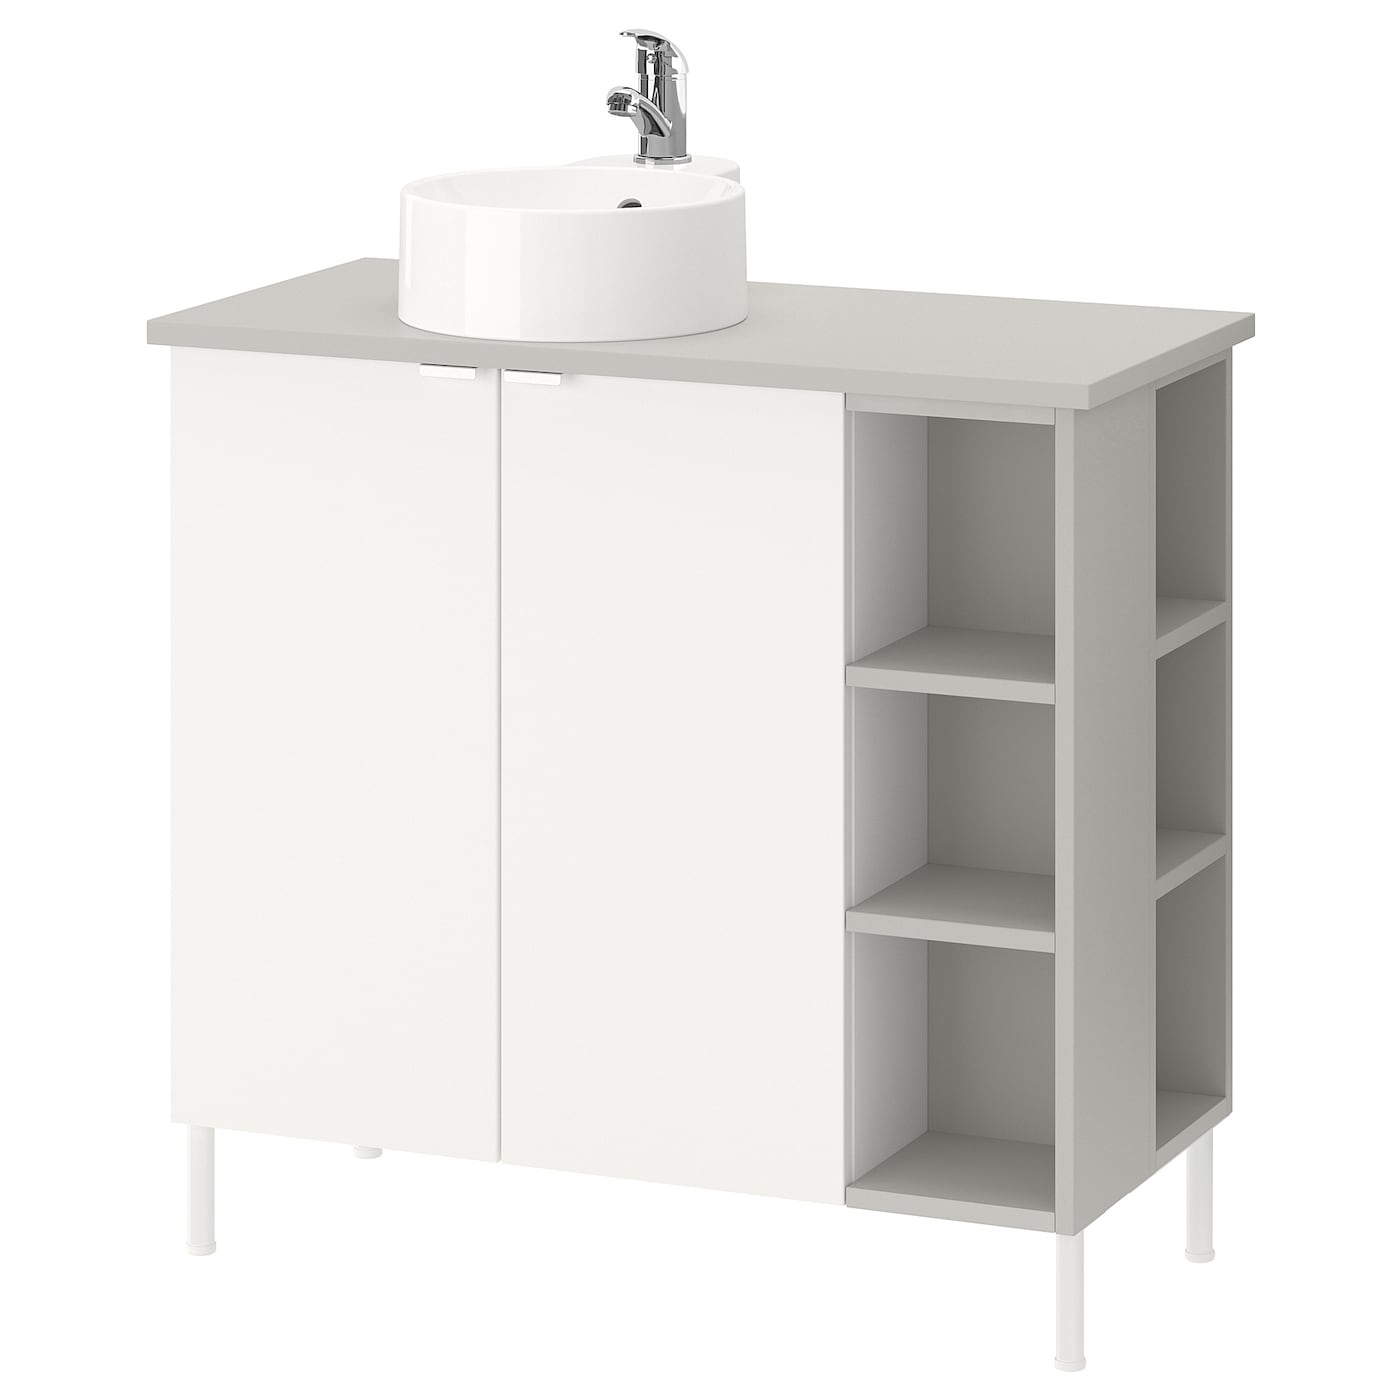 IKEA GUTVIKEN/LILLÅNGEN/VISKAN washbasin cab 2 doors/2 end units